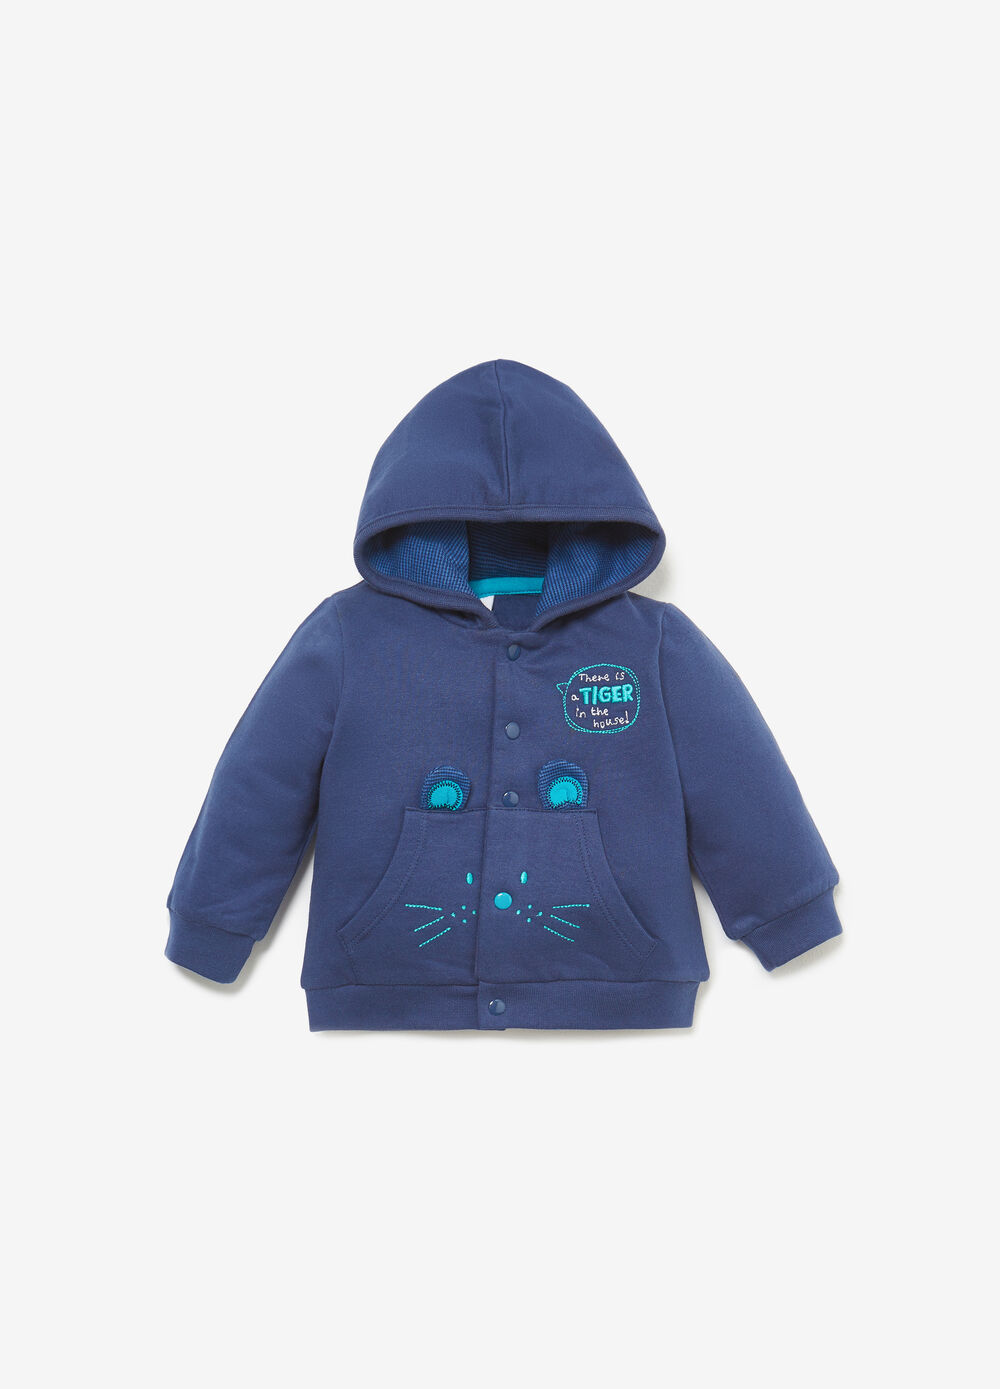 Cardigan with hood embroidery and patches